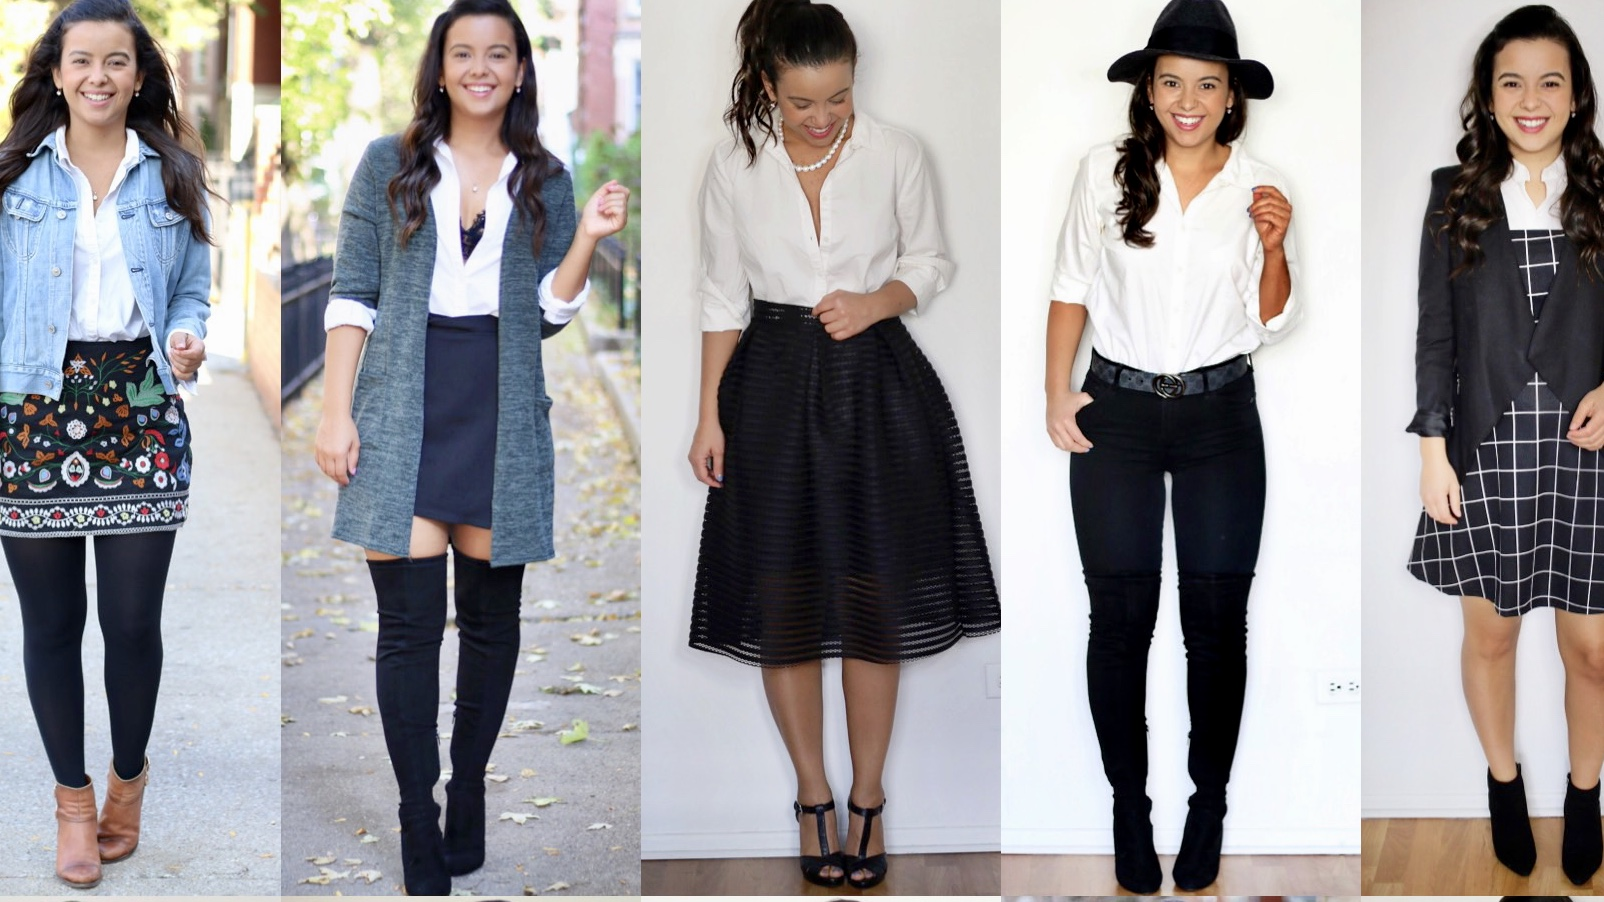 8 things you can do with a white button down shirt – 17 looks!